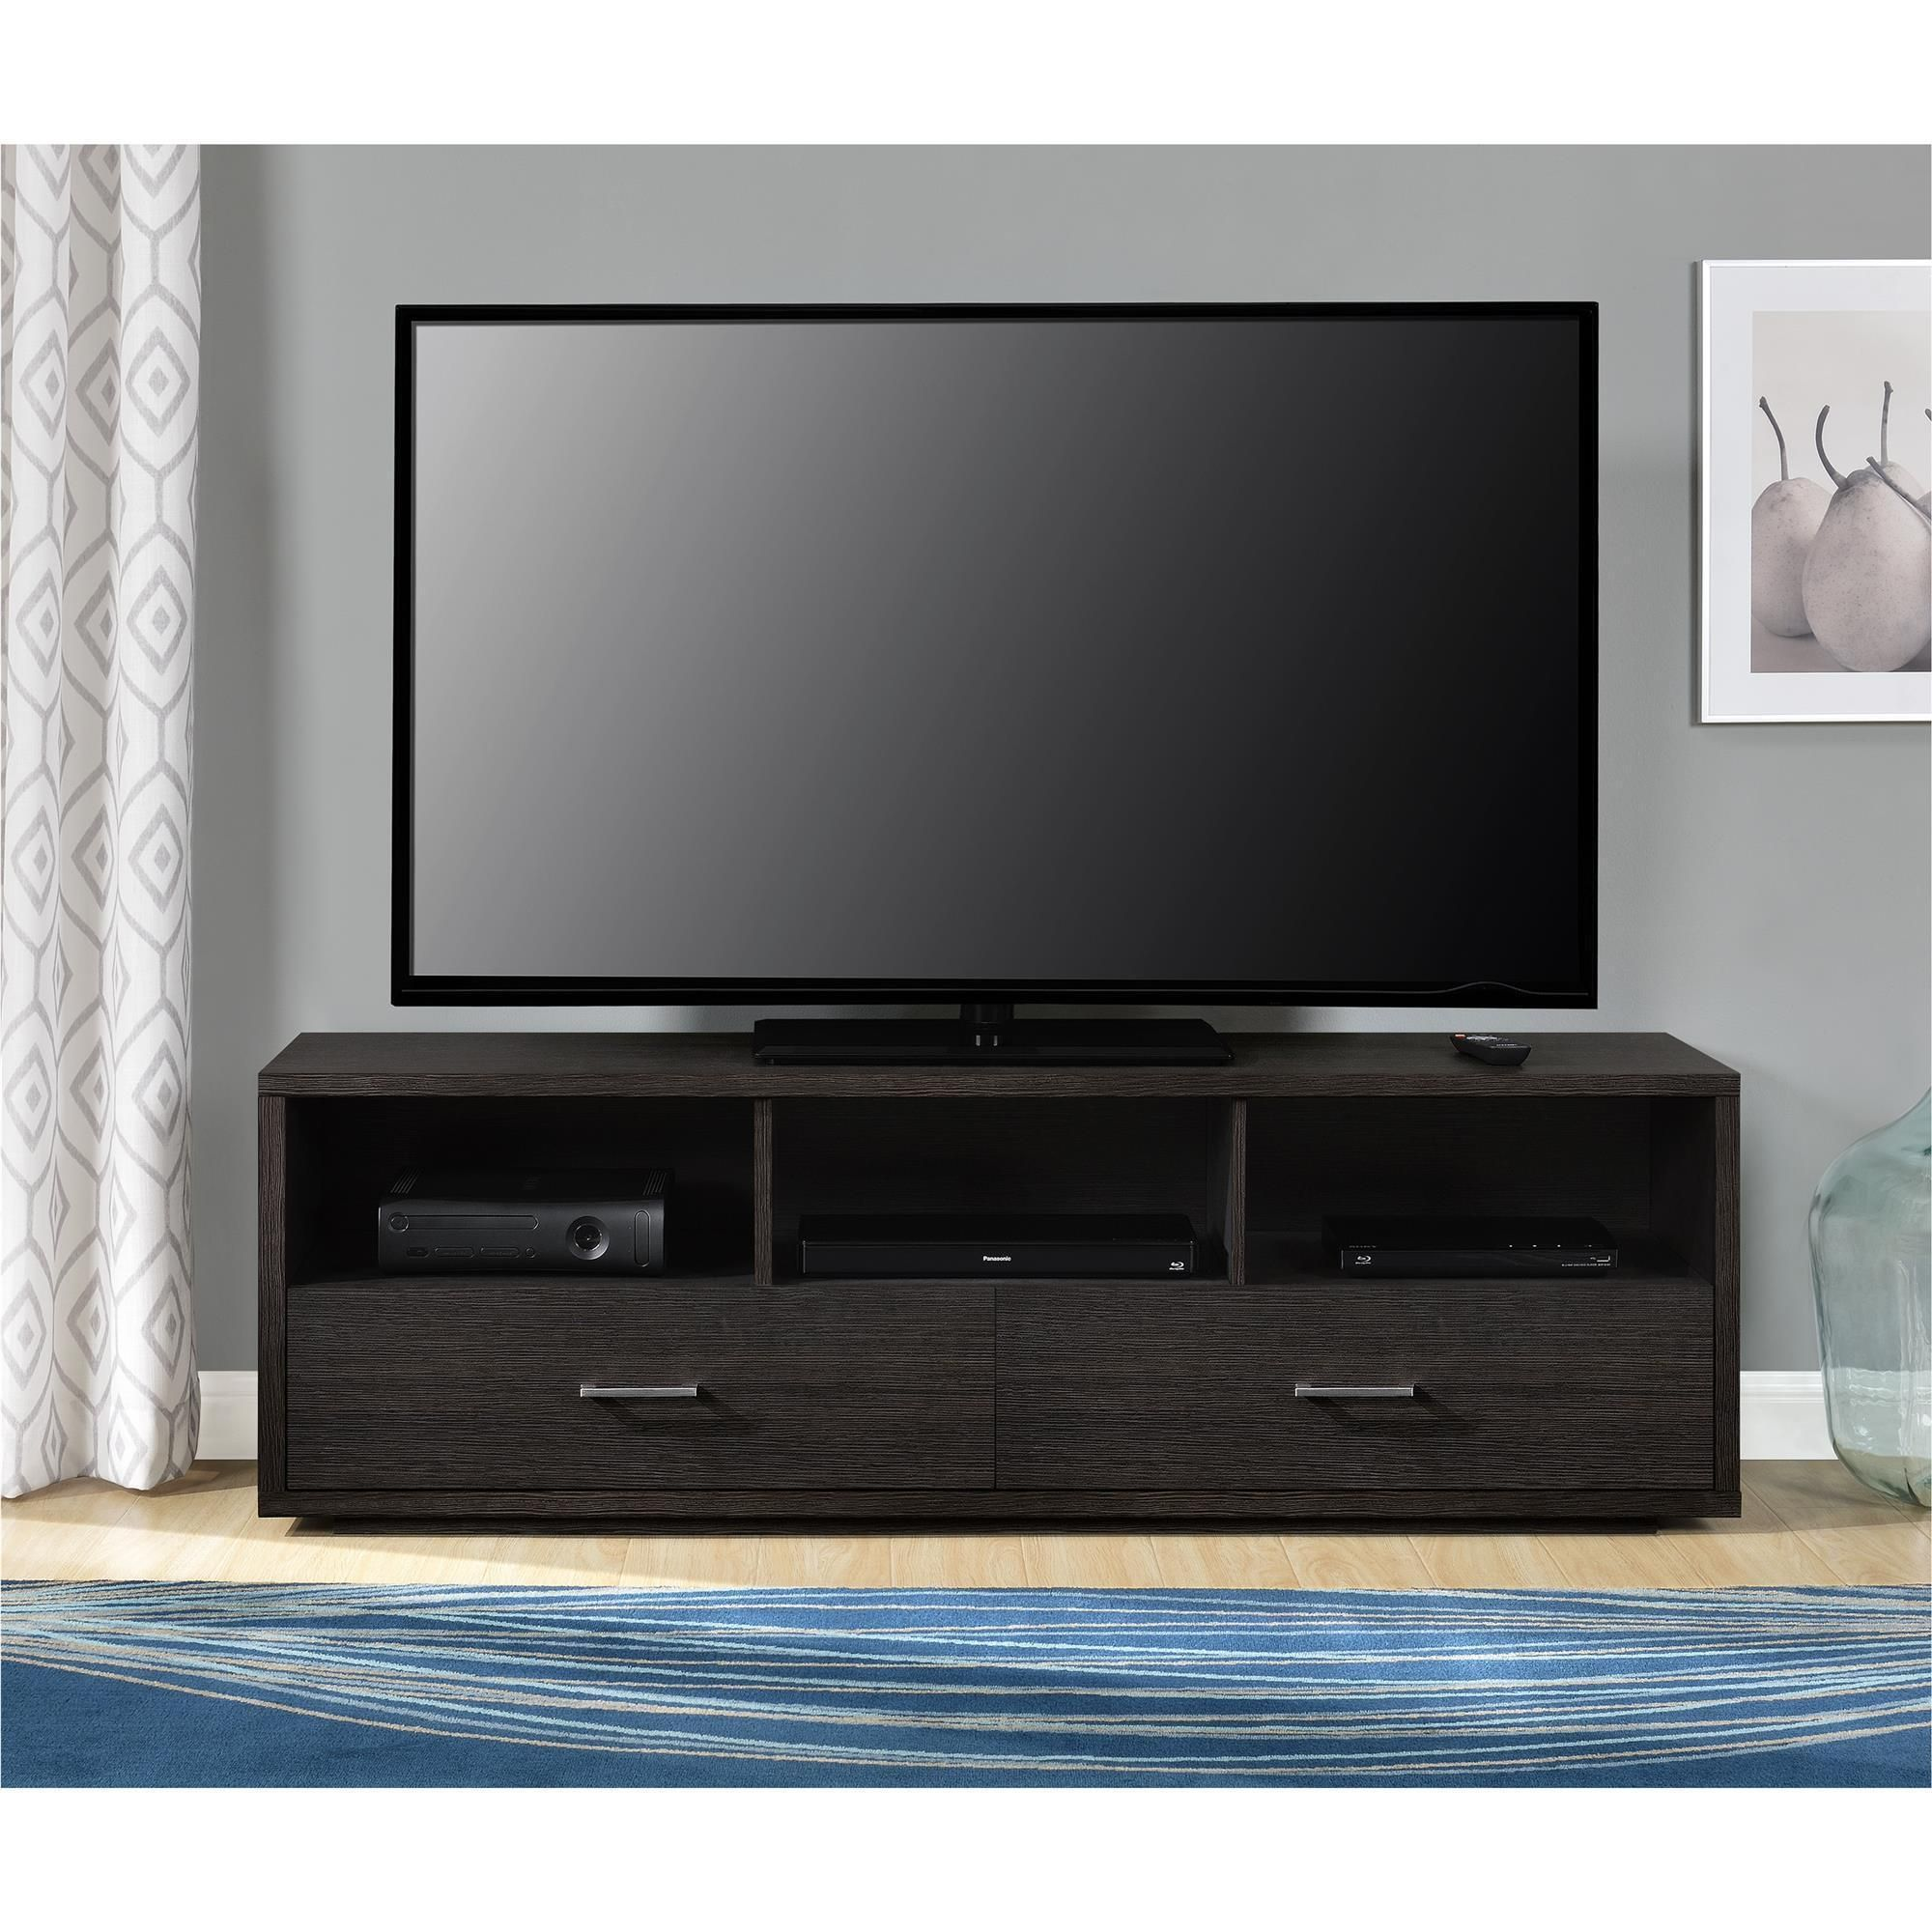 The Altra Clark 70 Inch Tv Stand Helps To Make A Statement In Your